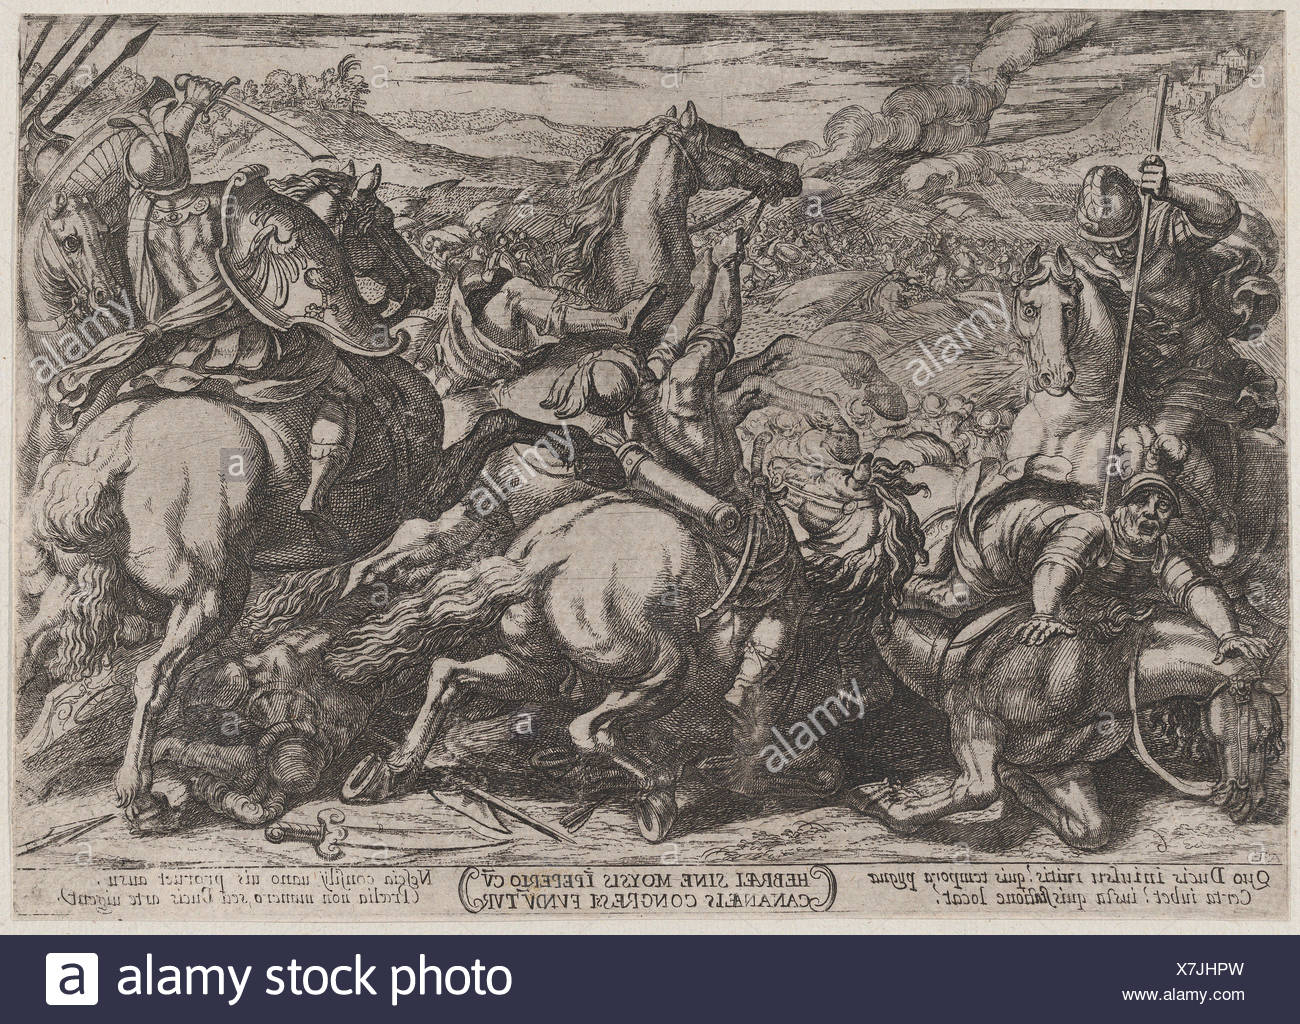 Plate 6: The Israelites Defeated by the Canaanites for Having Disobeyed Moses, from 'The Battles of the Old Testament'. Artist: Antonio Tempesta - Stock Image